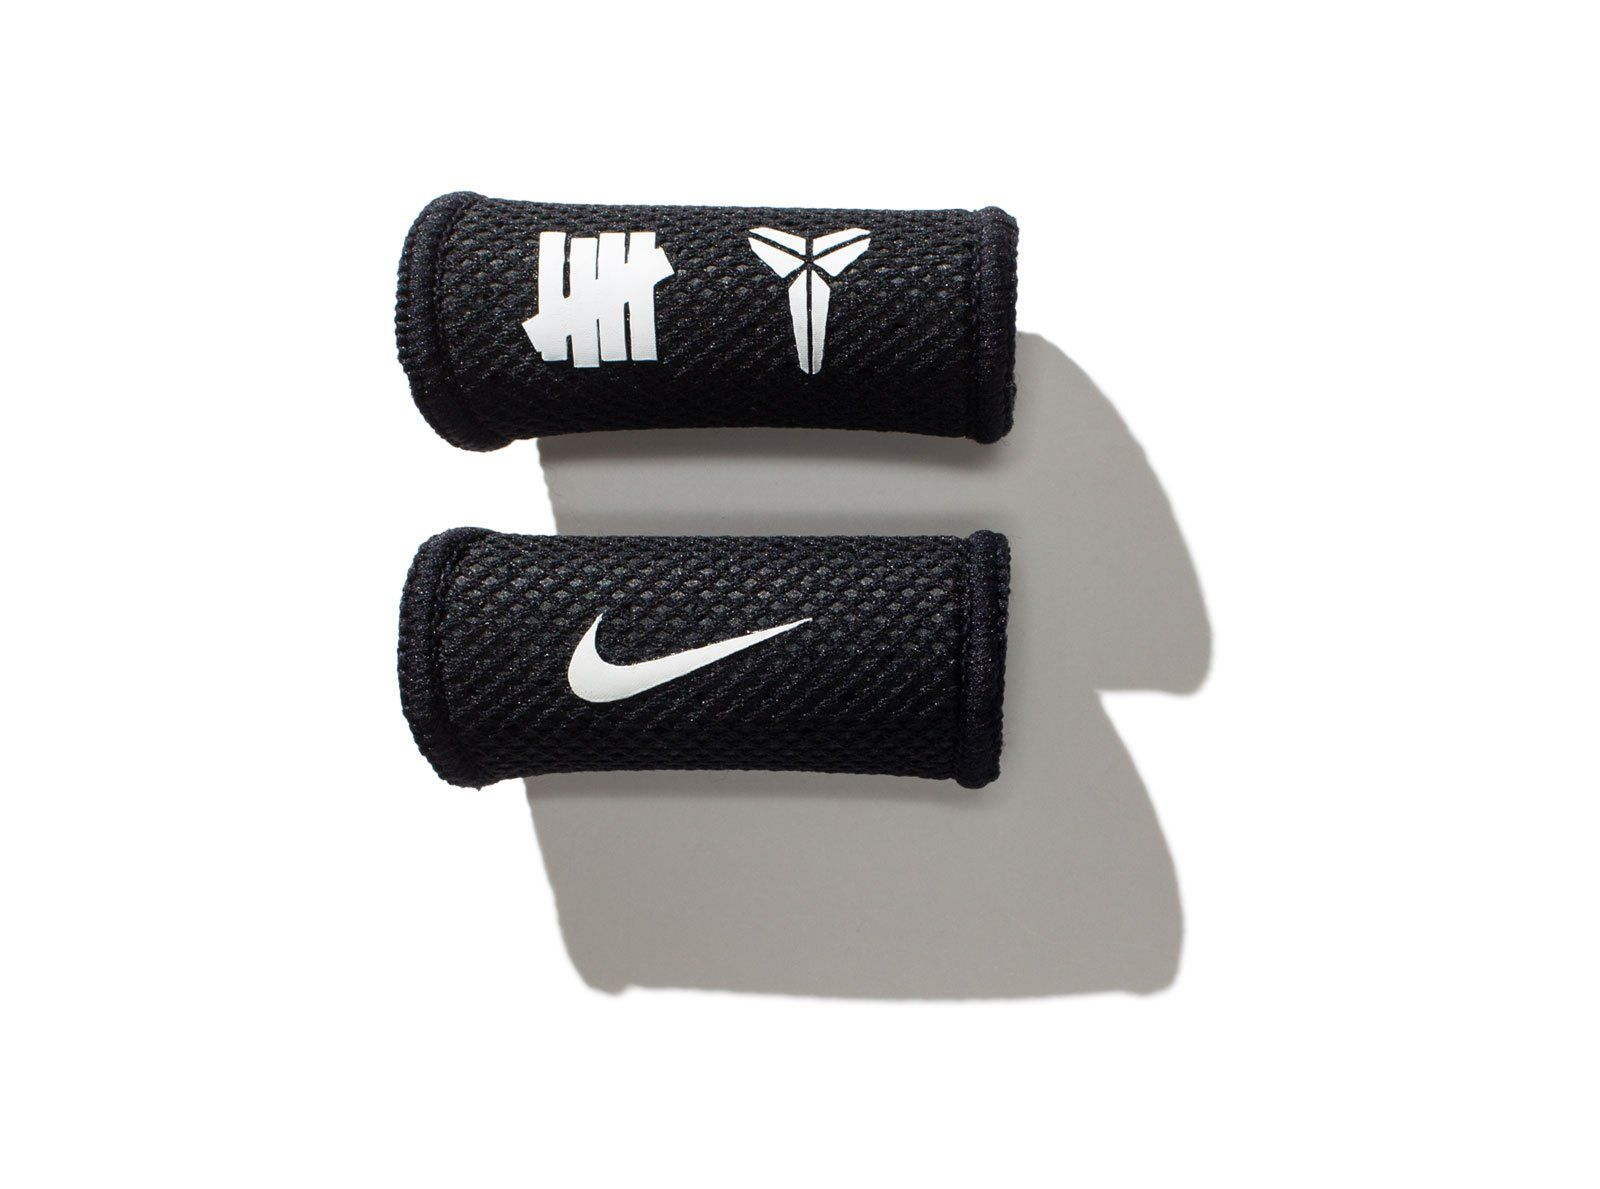 a2d515a26d65 NIKE x KOBE x UNDEFEATED FINGER SLEEVES - BLACK